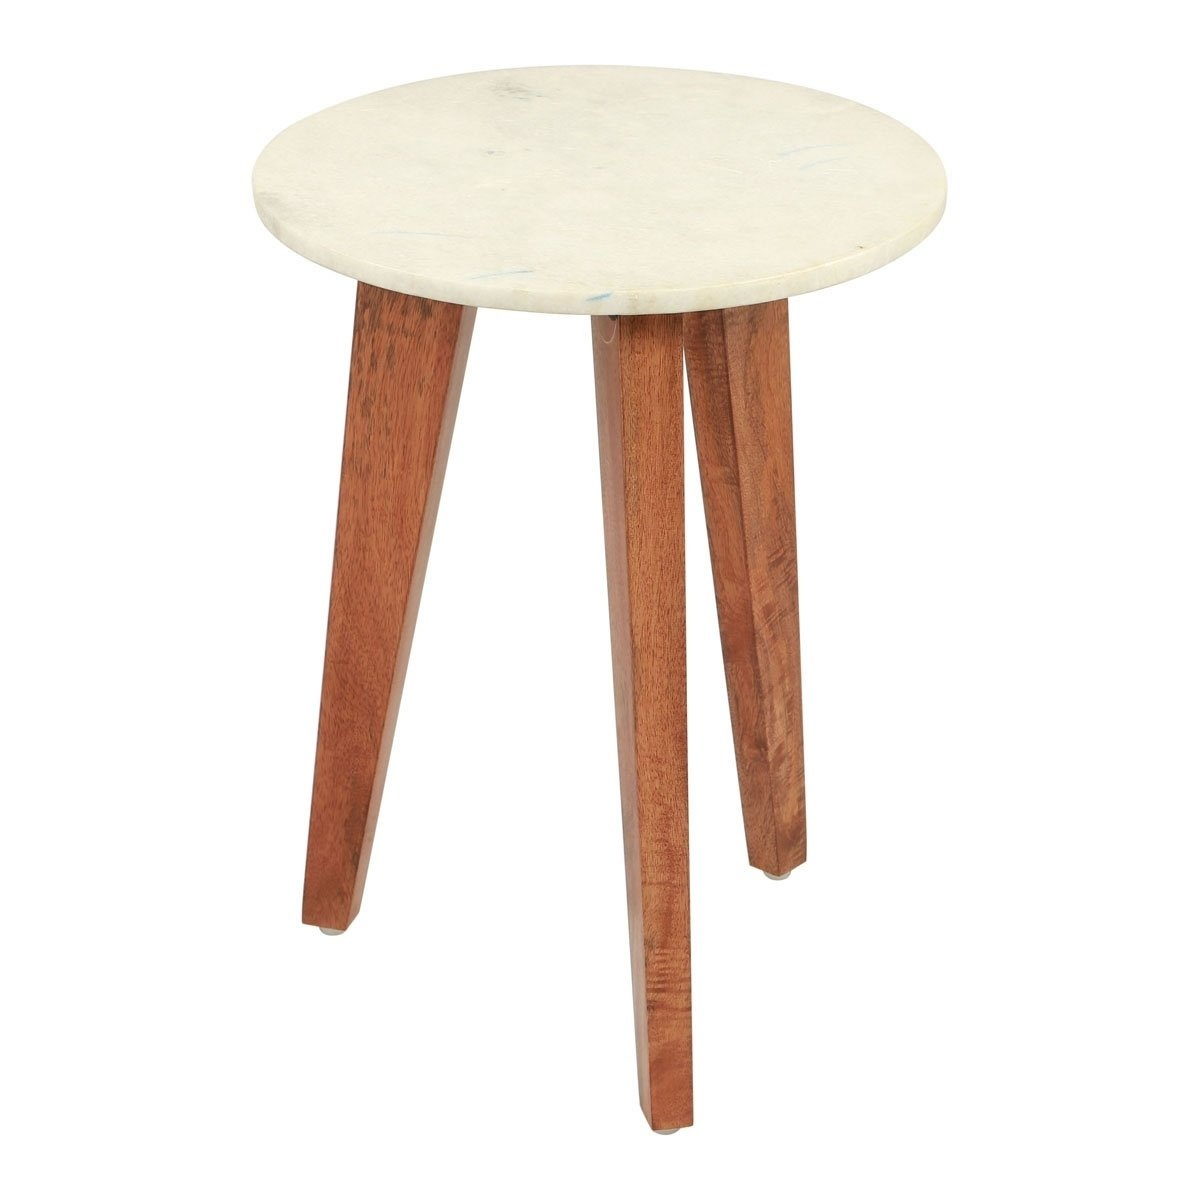 axton white marble top wood end table free shipping today signy drum accent with homemade outdoor coffee studio apartment furniture modern decor glass tables target seater garden